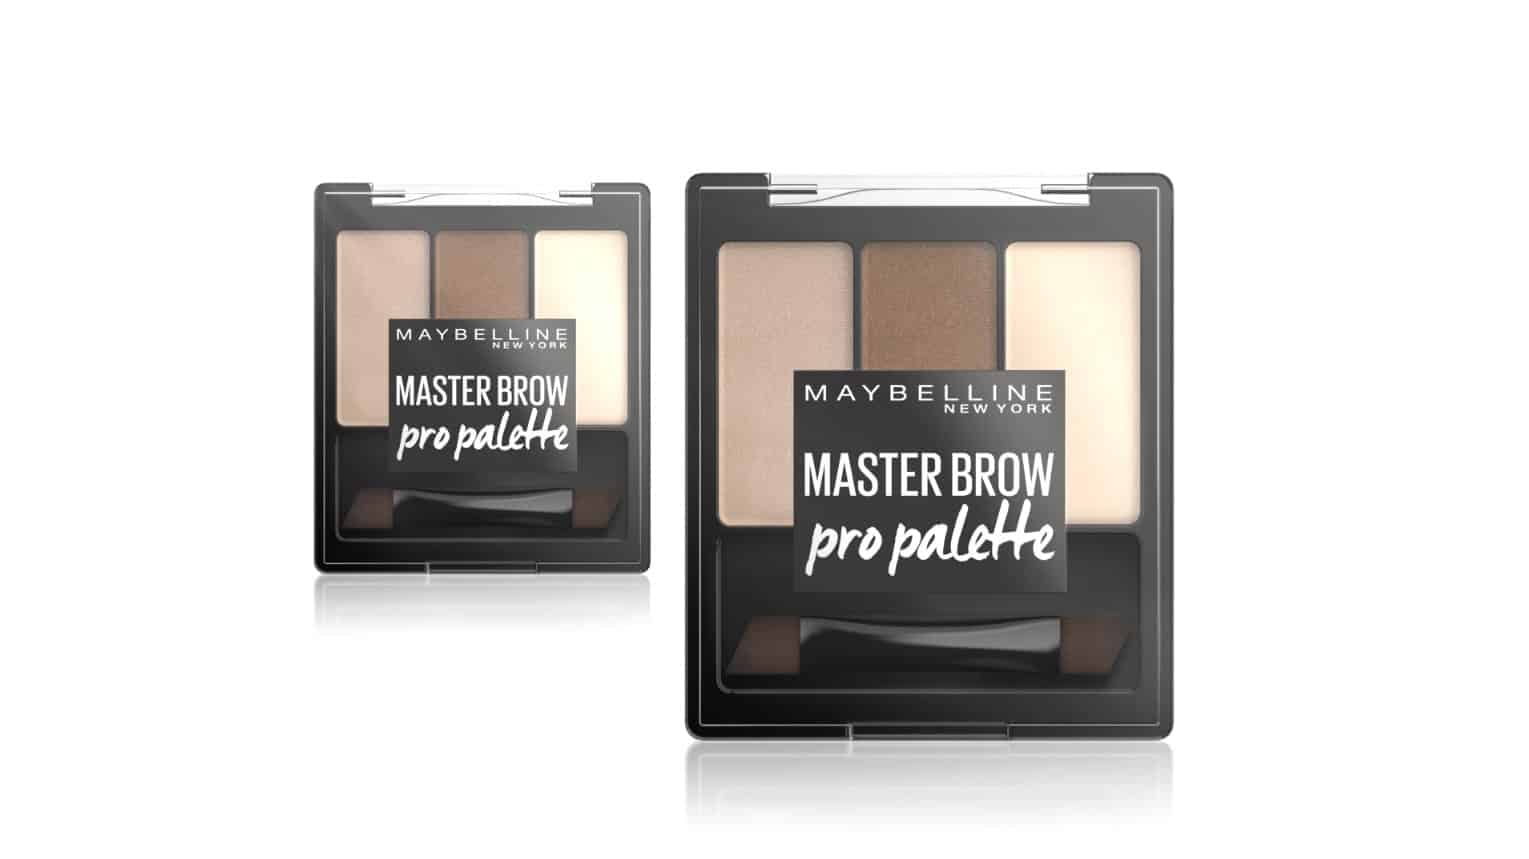 MAYBELLINE BROW PAL